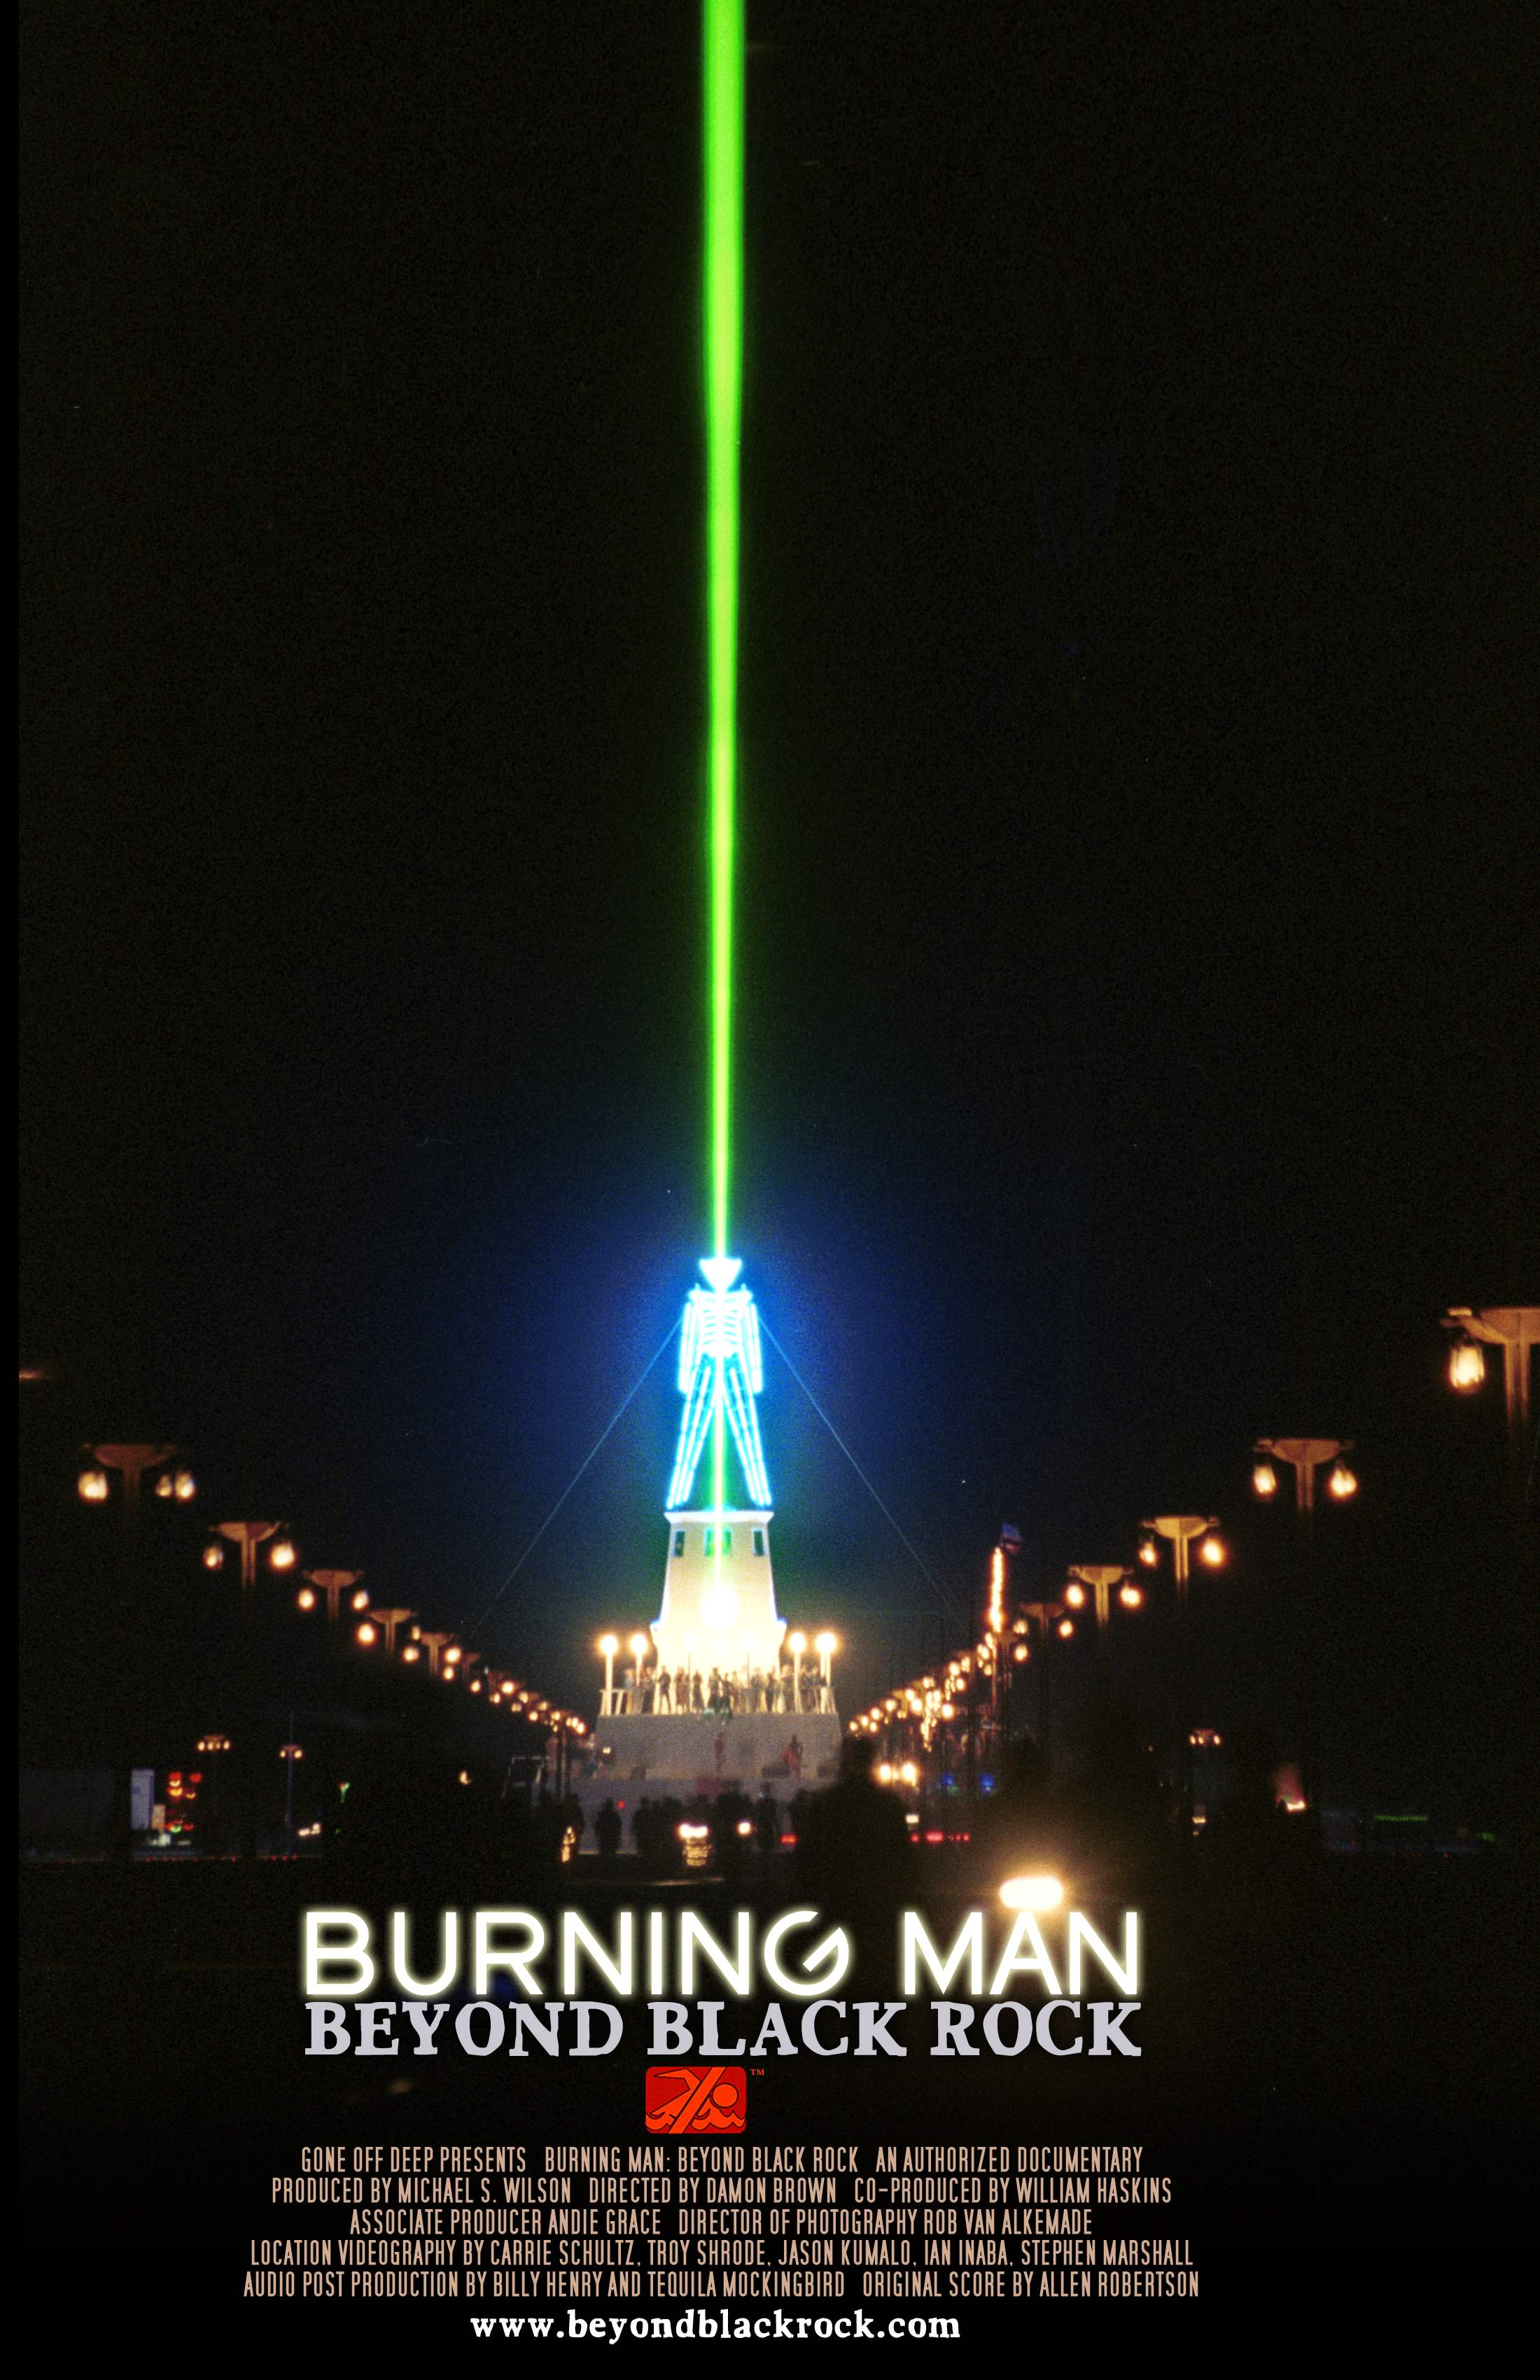 How To Recreate Some Burning Man Magic at Home: Beyond Black